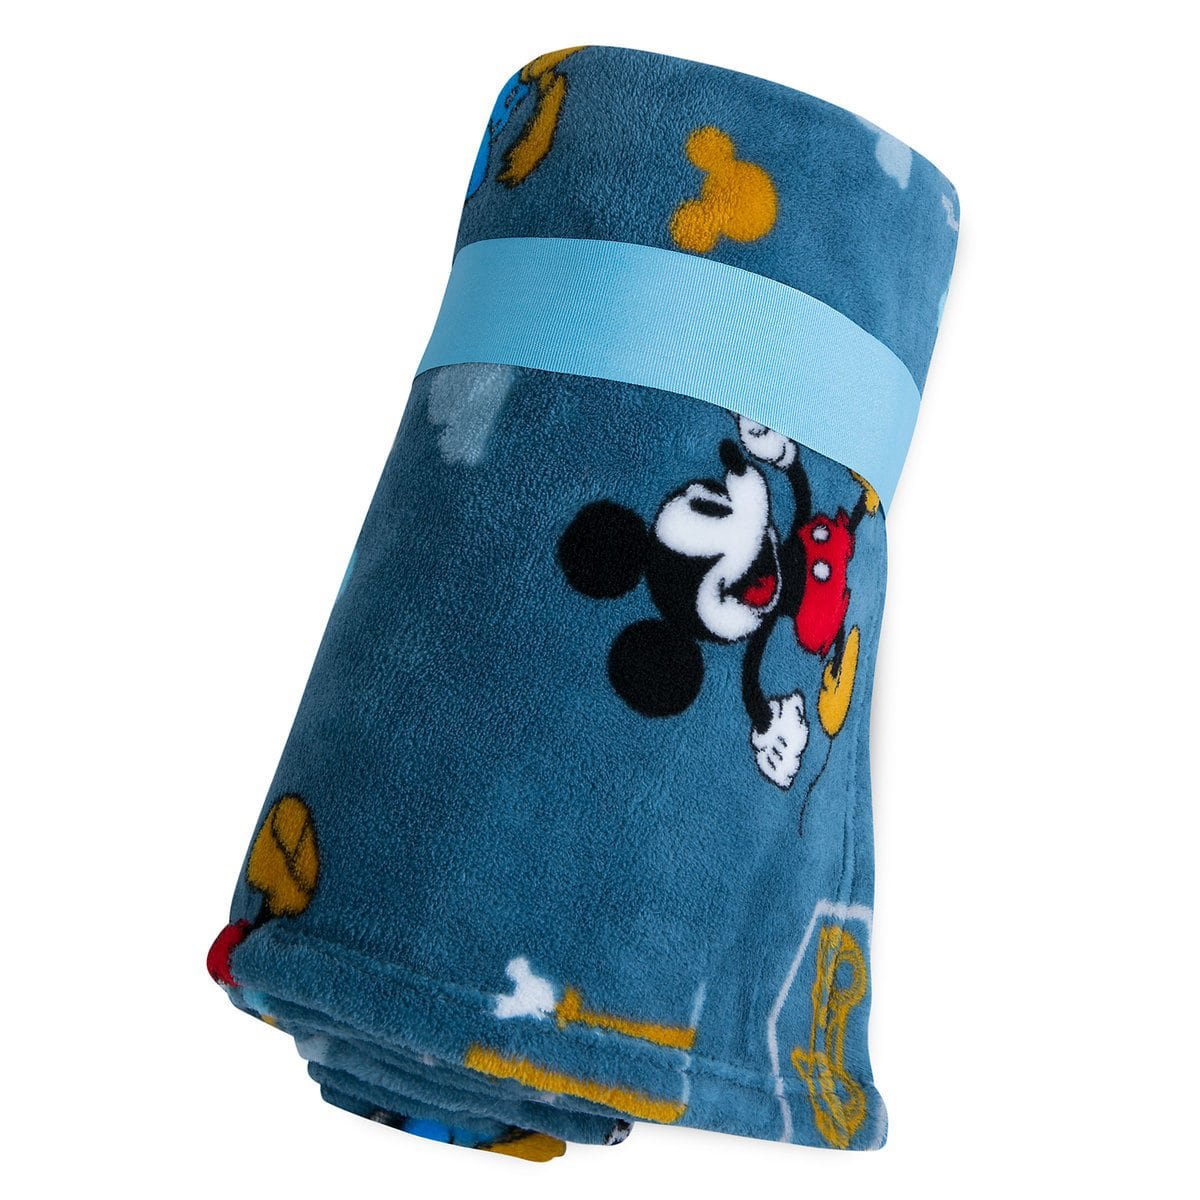 Disney Store Mickey Mouse Blue Fleece Throw Blanket 2018